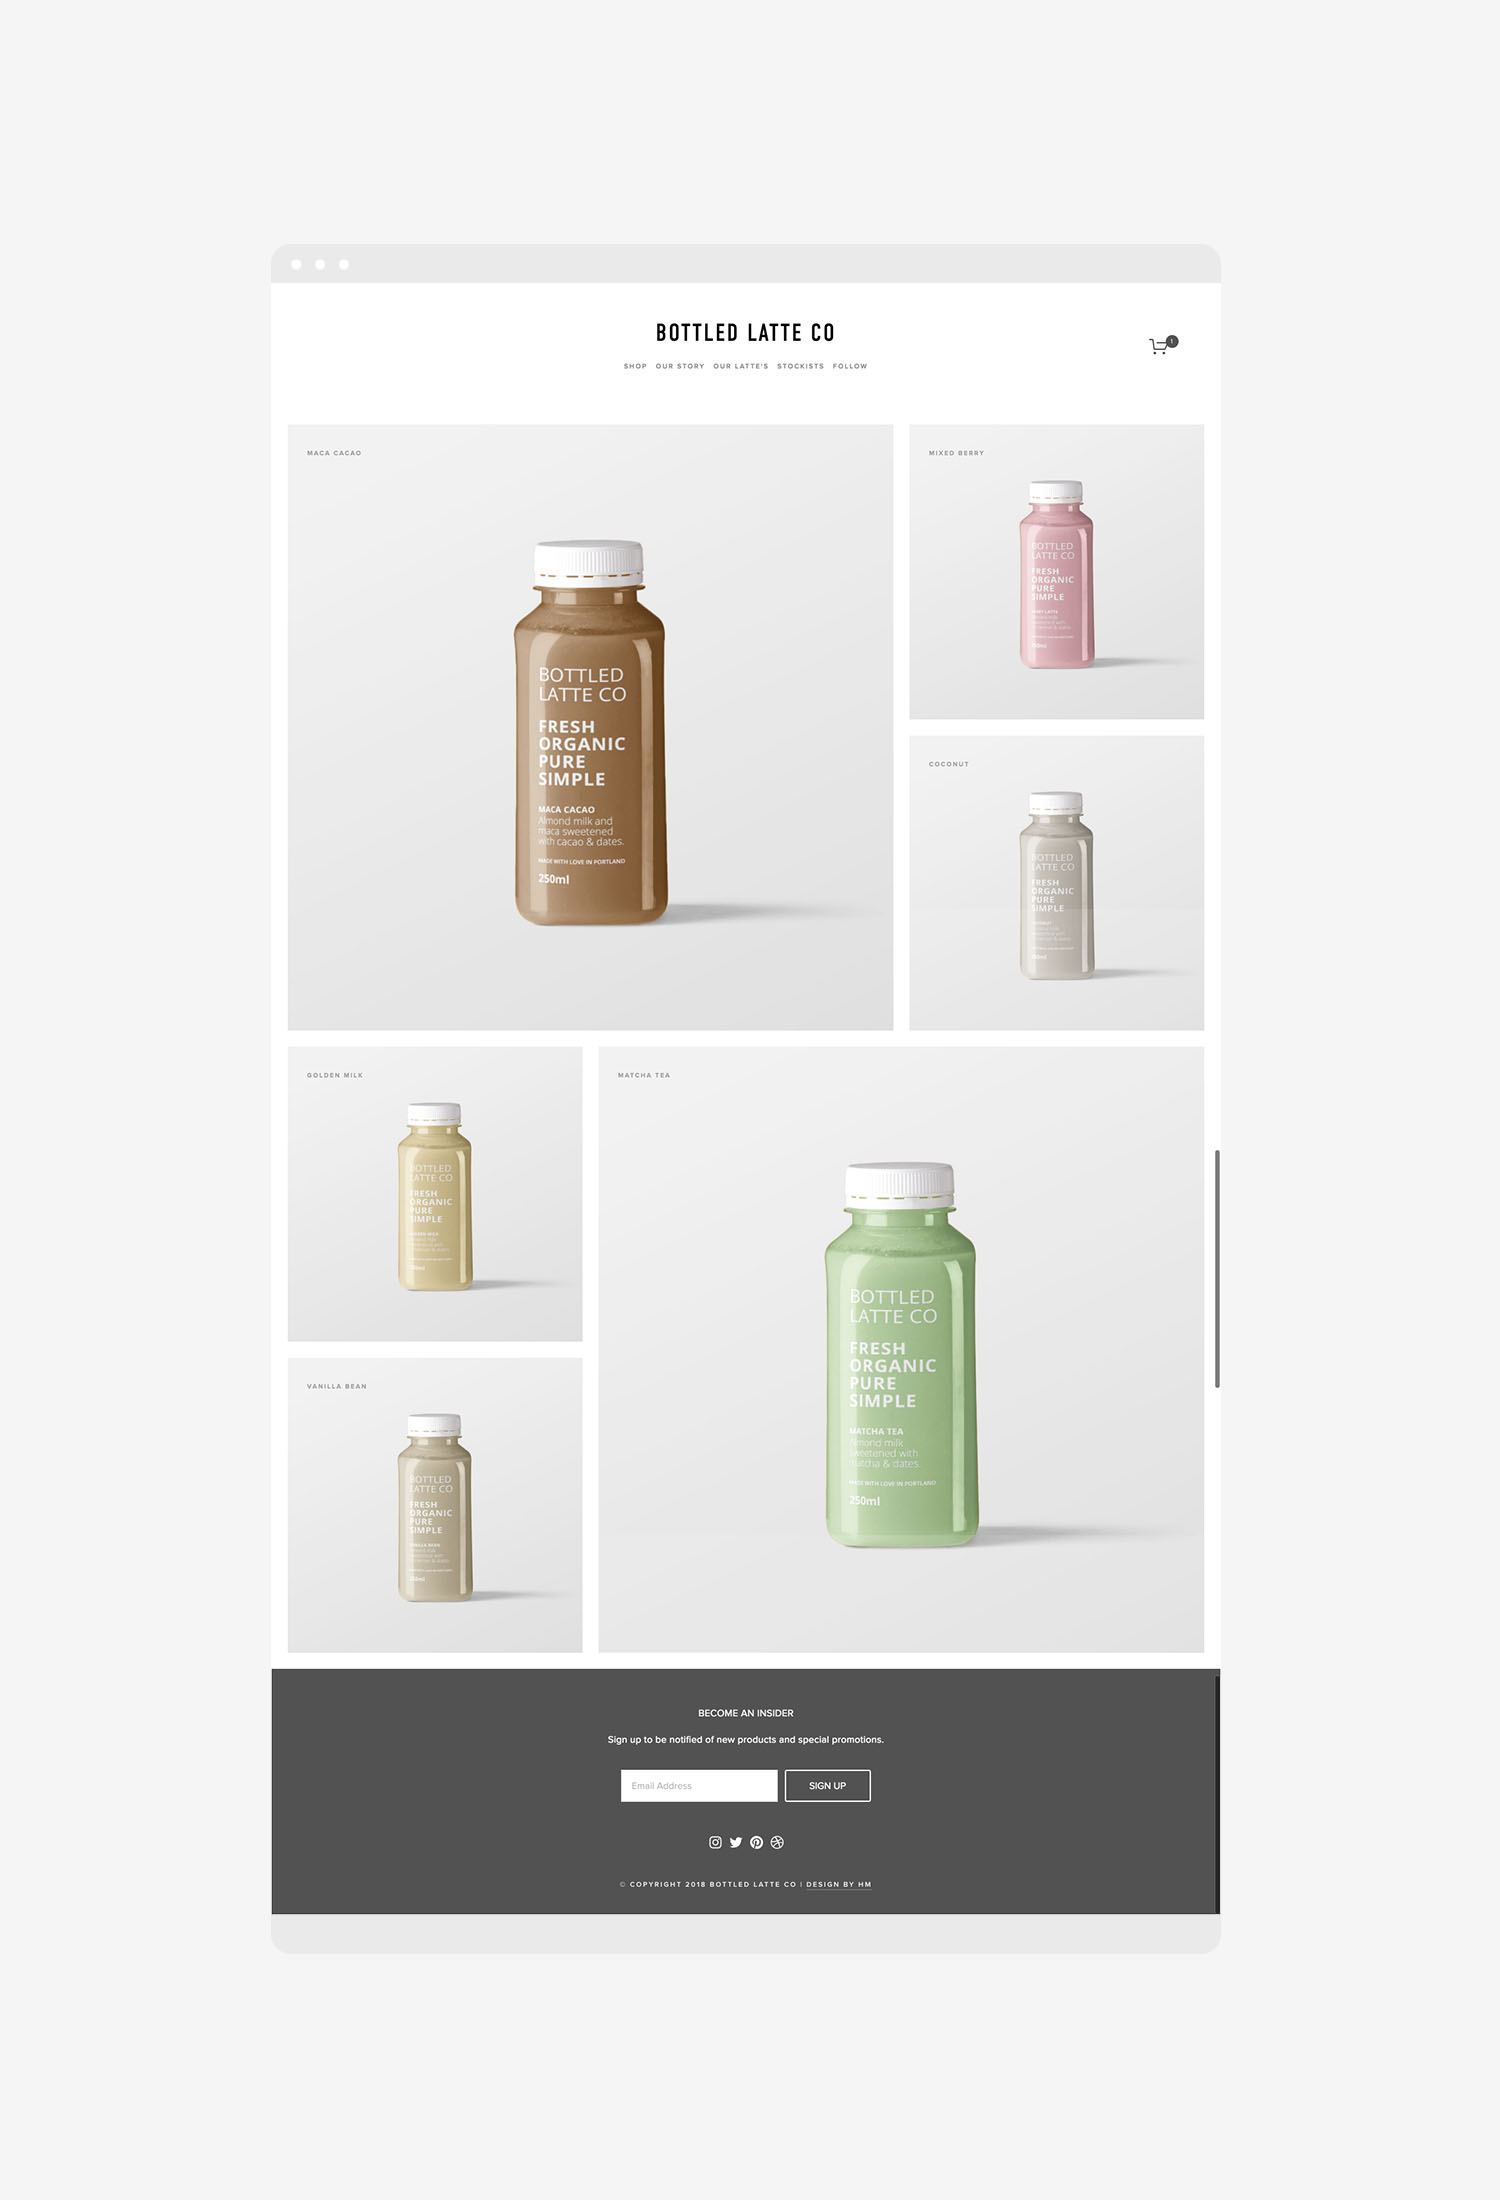 BottledLatteCo-Shop-Website-Design-Squarespace-Heather-Maehr-Graphic-Designer-Portland.jpg